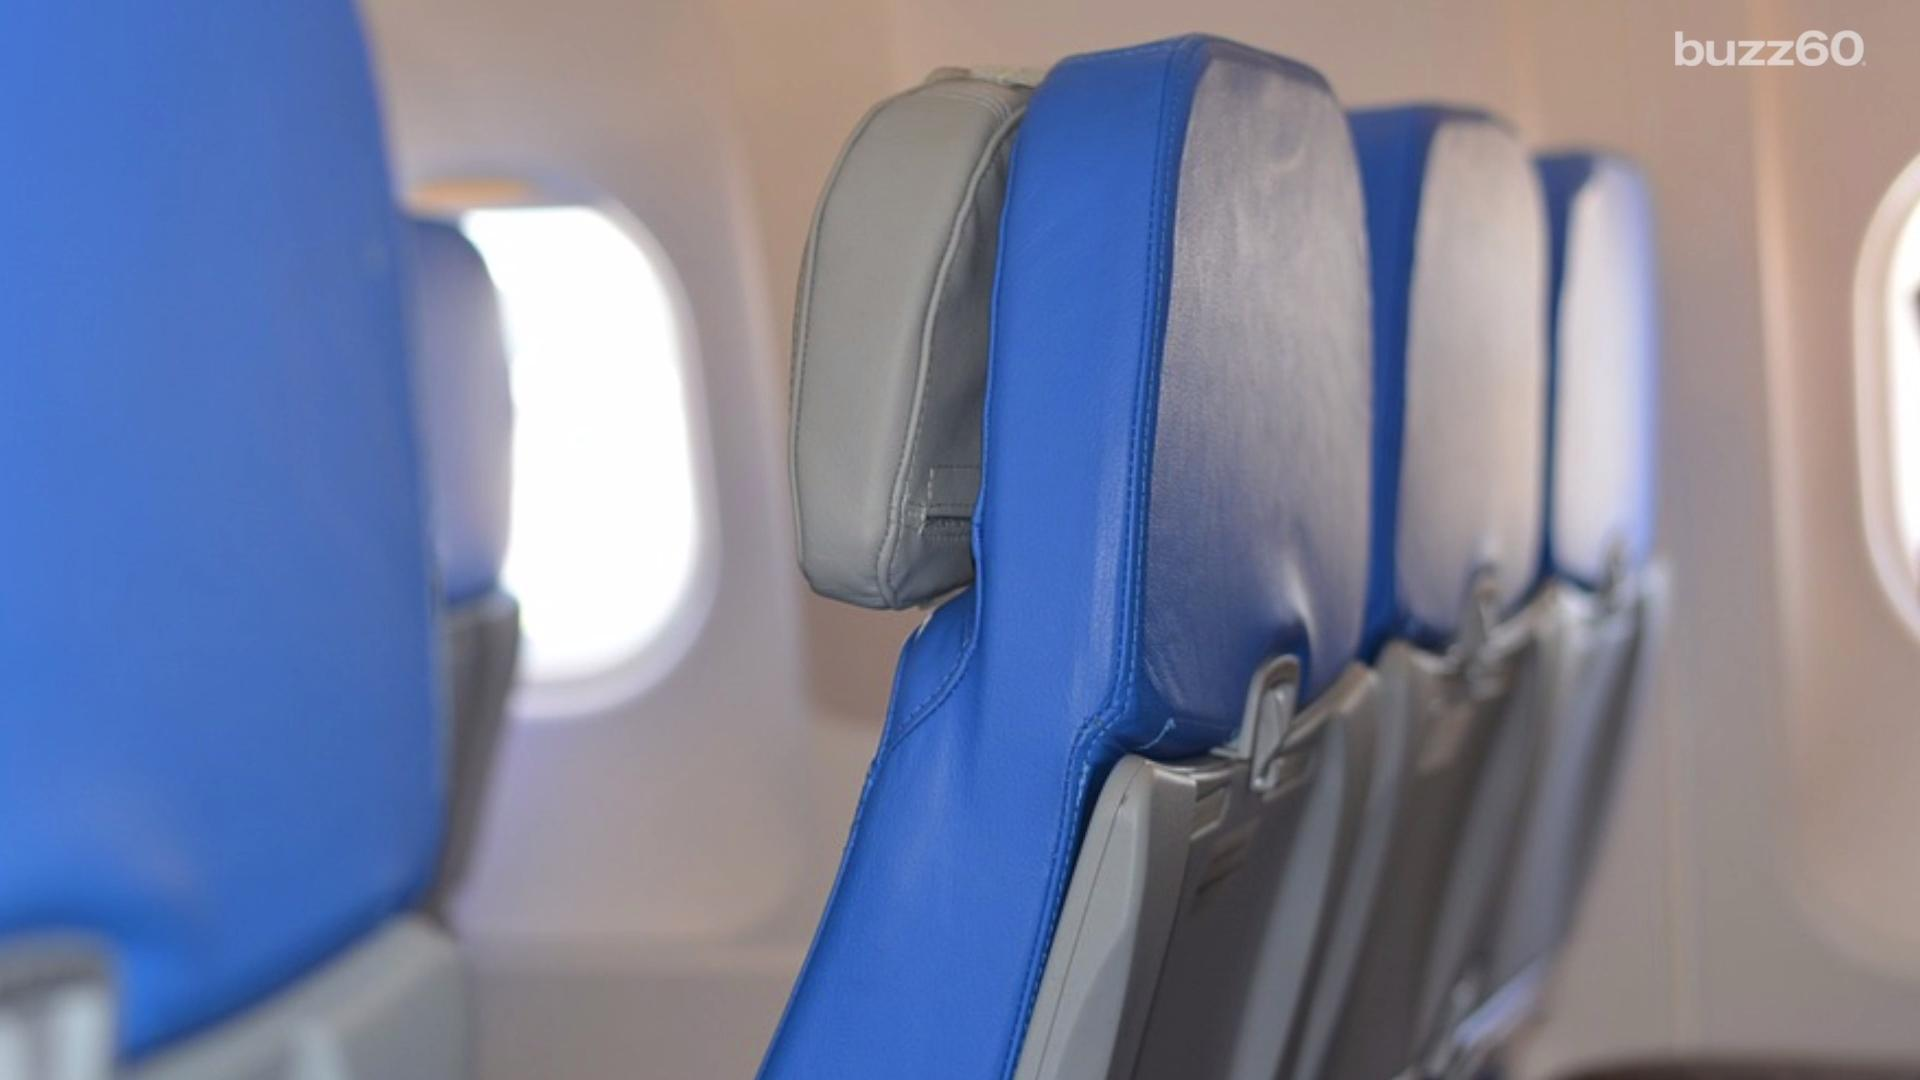 The Answer to Who Gets the Armrest in the Middle Plane Seat